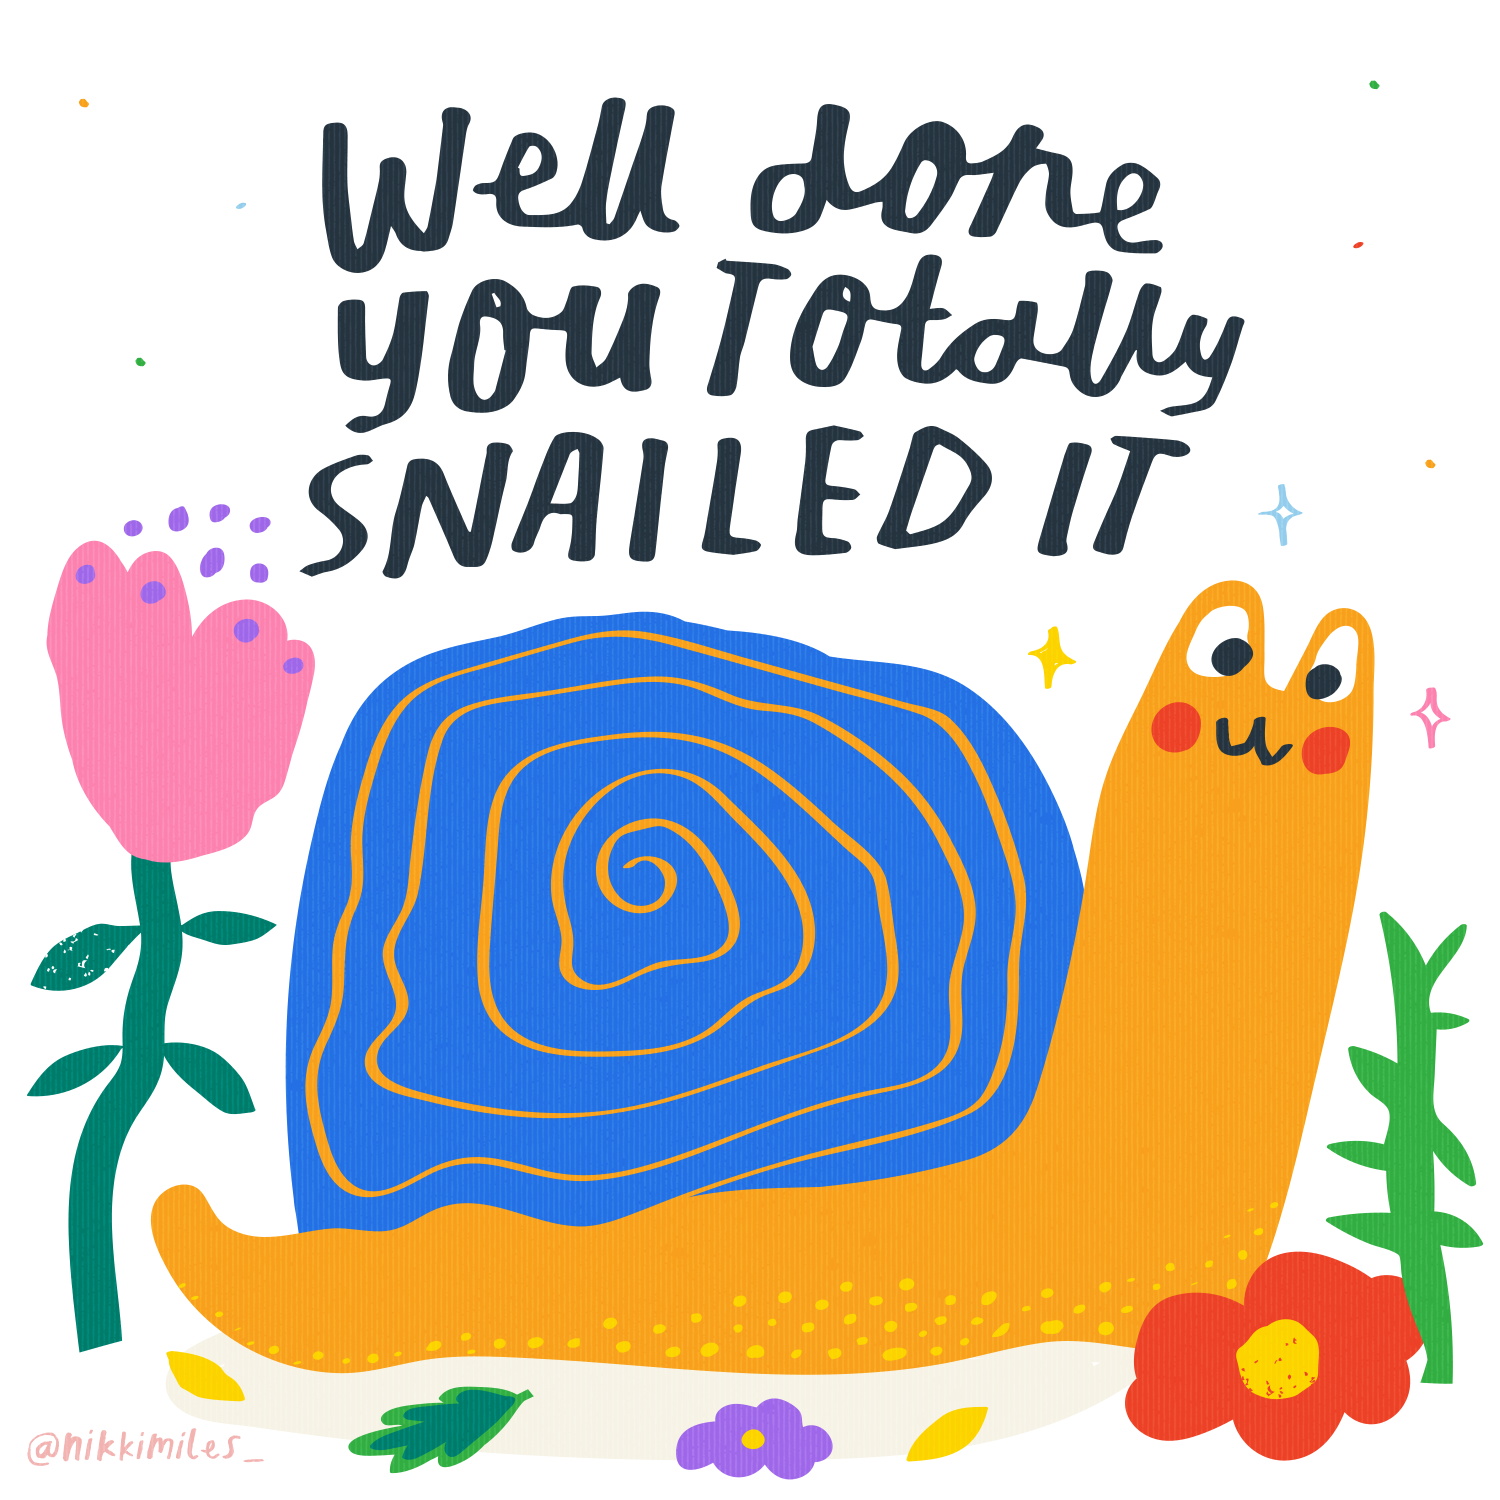 snailed it.png